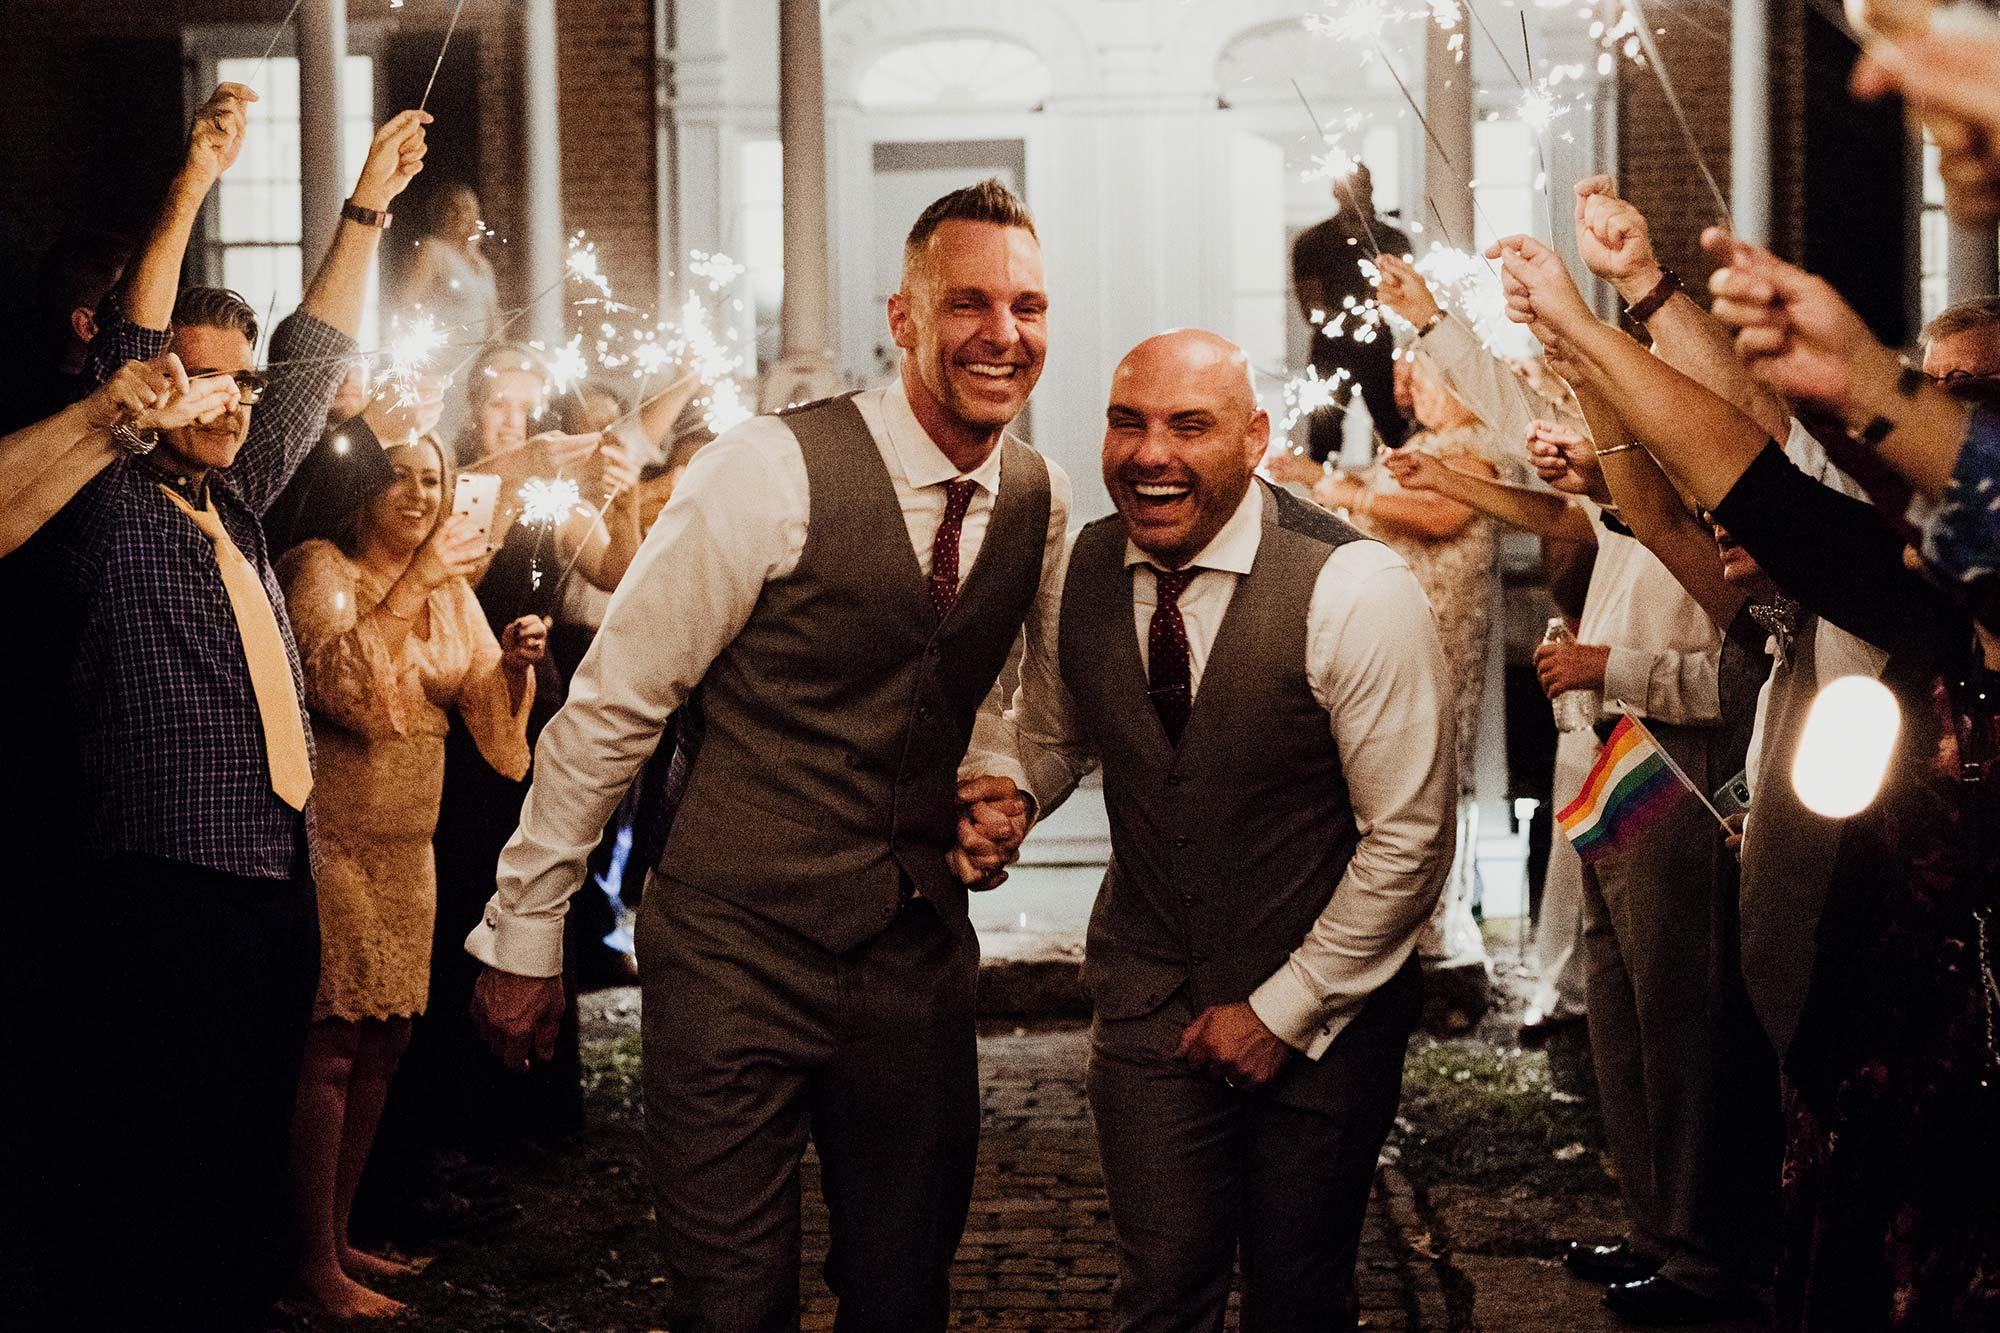 LGBTQ Louisville Kentucky Wedding at Hermitage Farm Crystal Ludwick Photo sparkler send-off